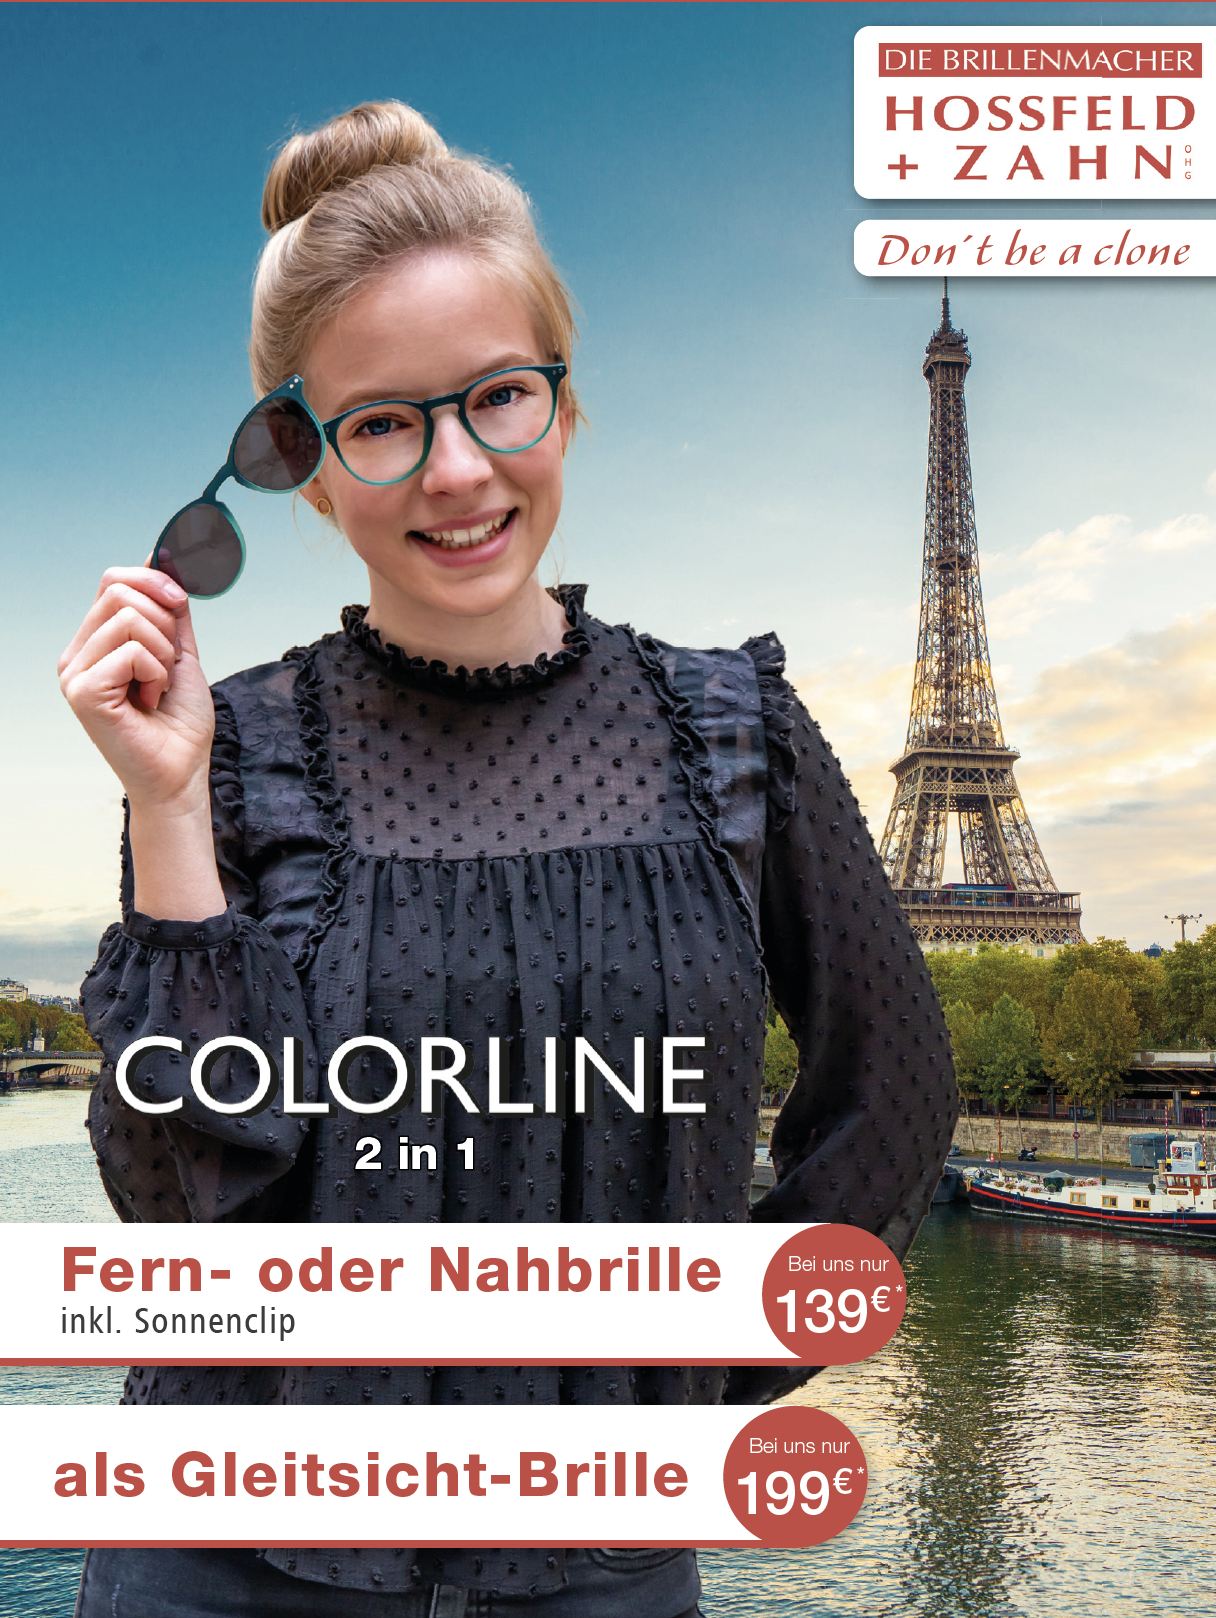 Colorline 2 in 1